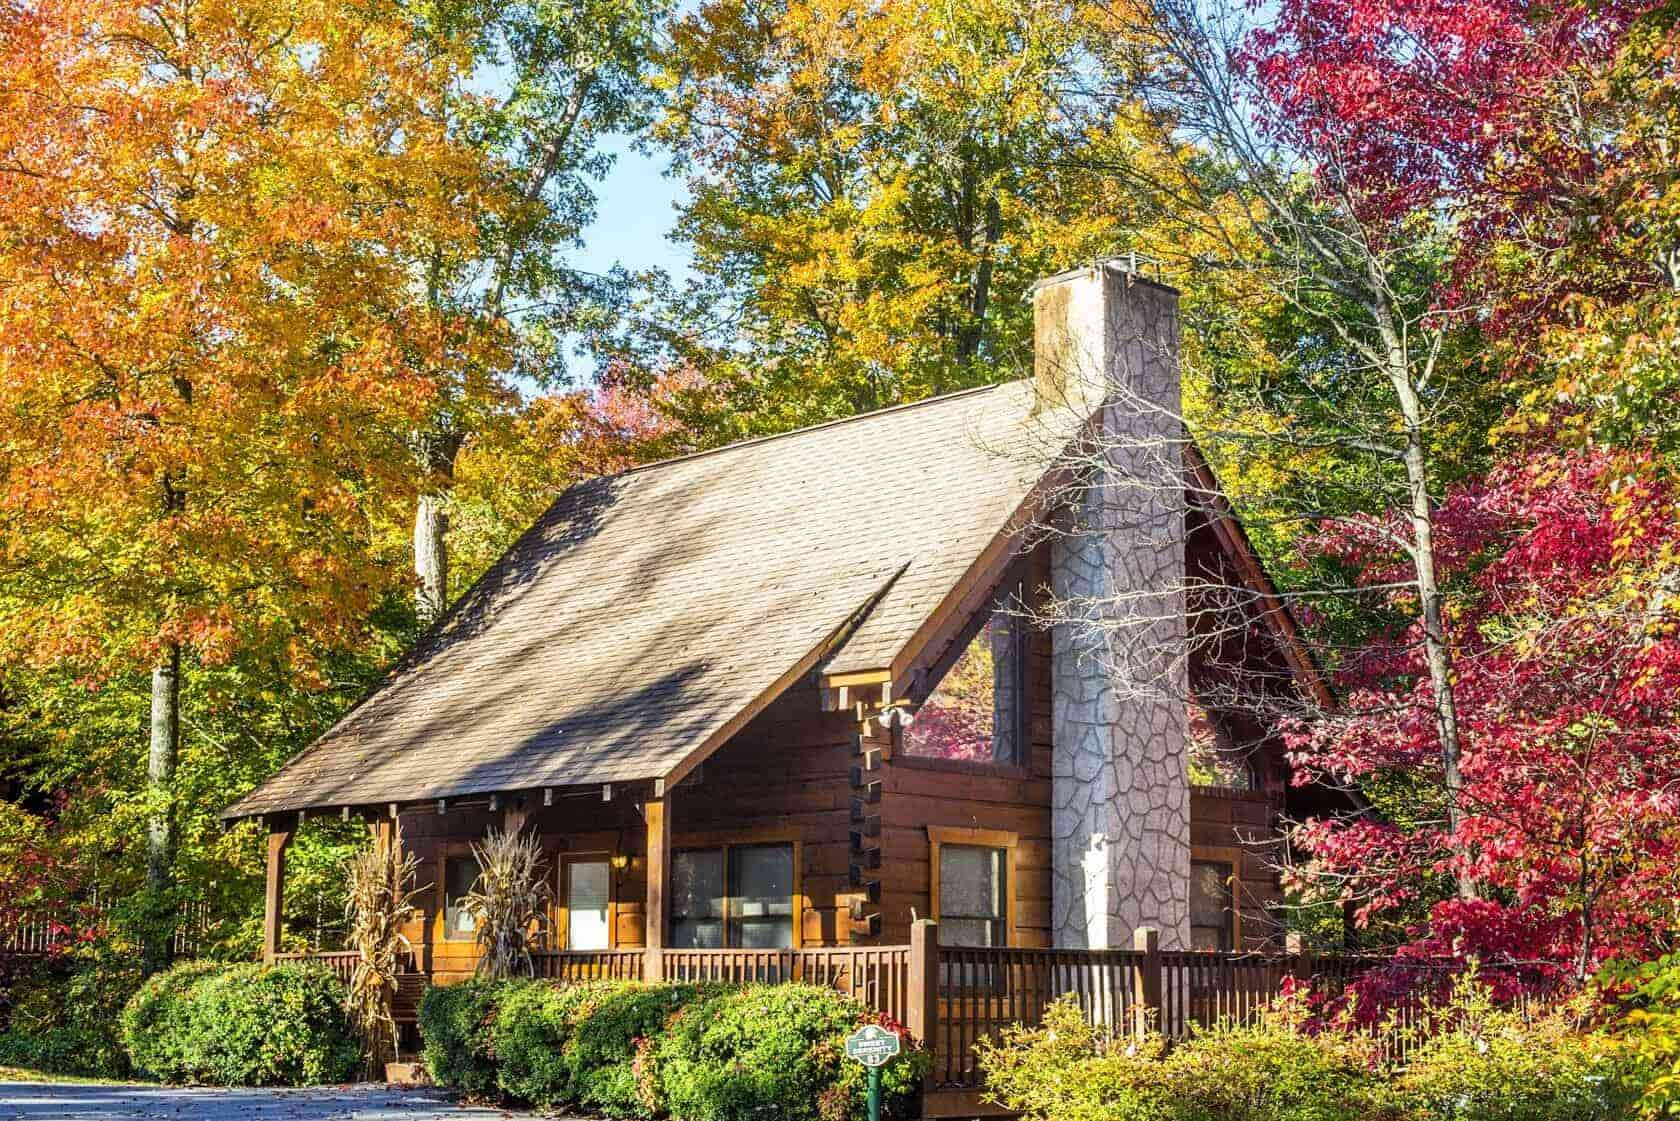 eagles ridge cabin in the woods in fall